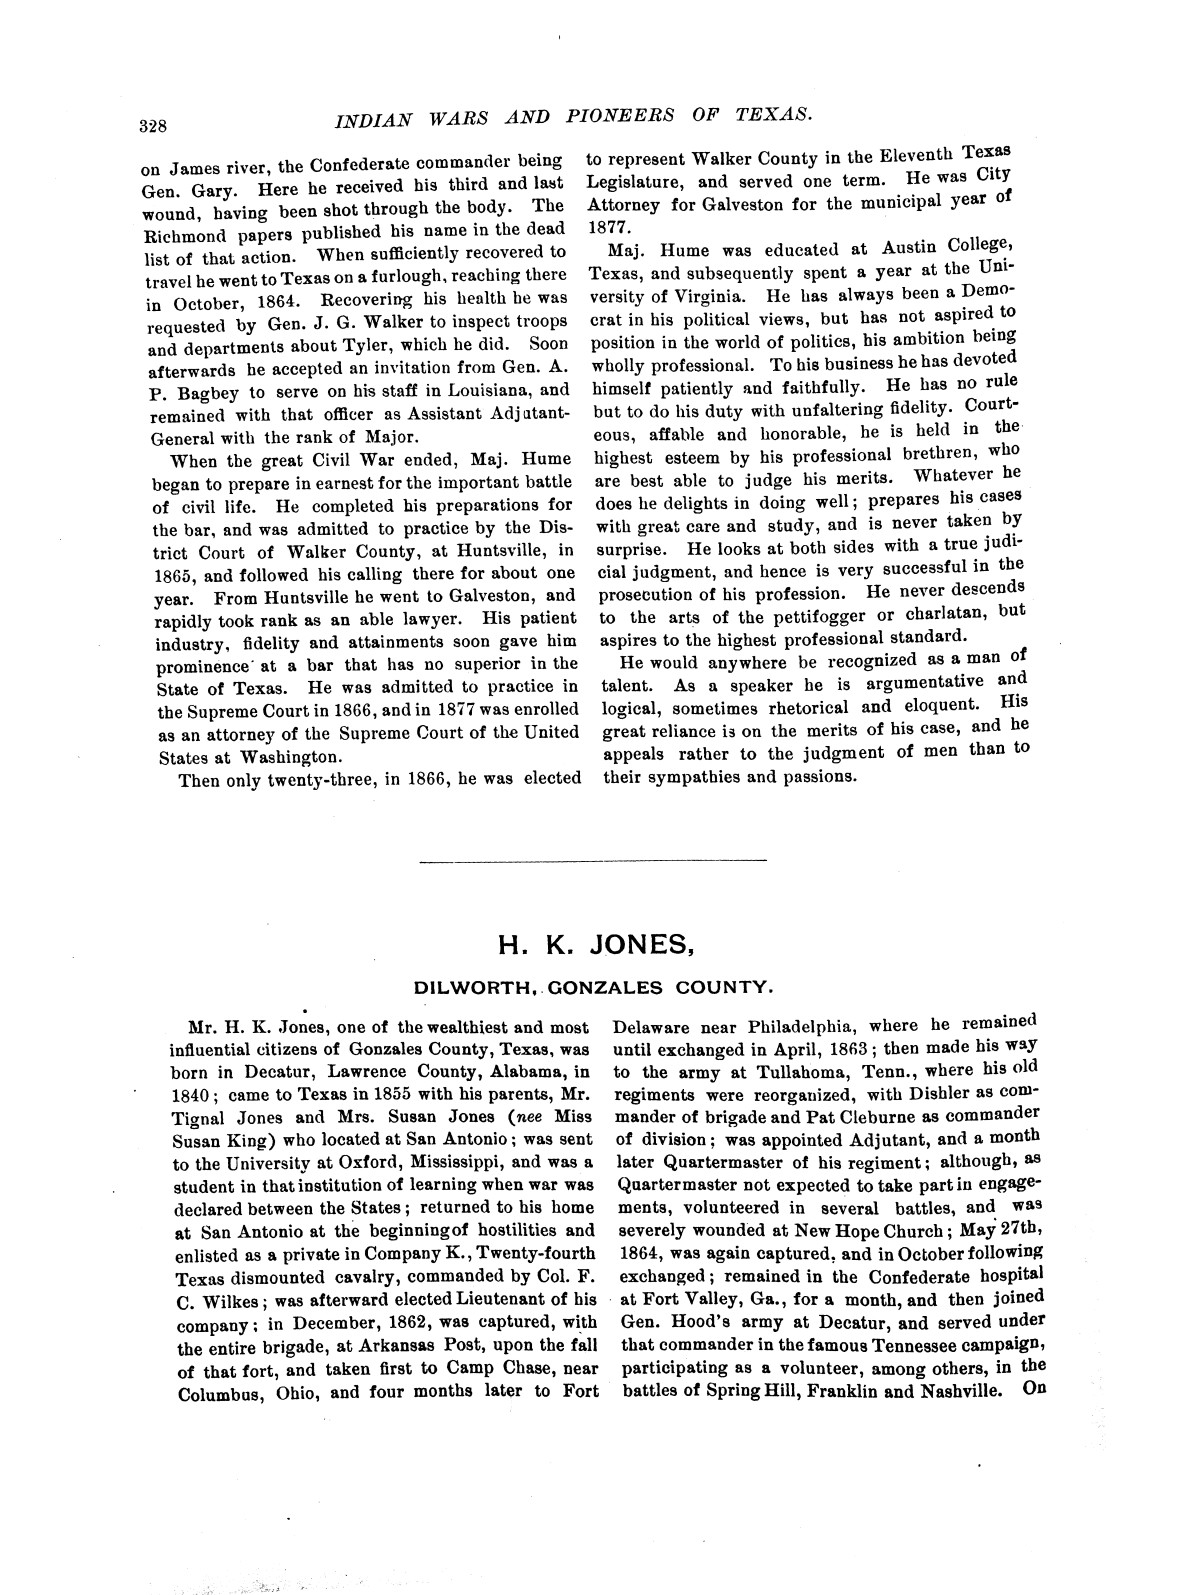 Indian wars and pioneers of Texas / by John Henry Brown.                                                                                                      [Sequence #]: 390 of 894